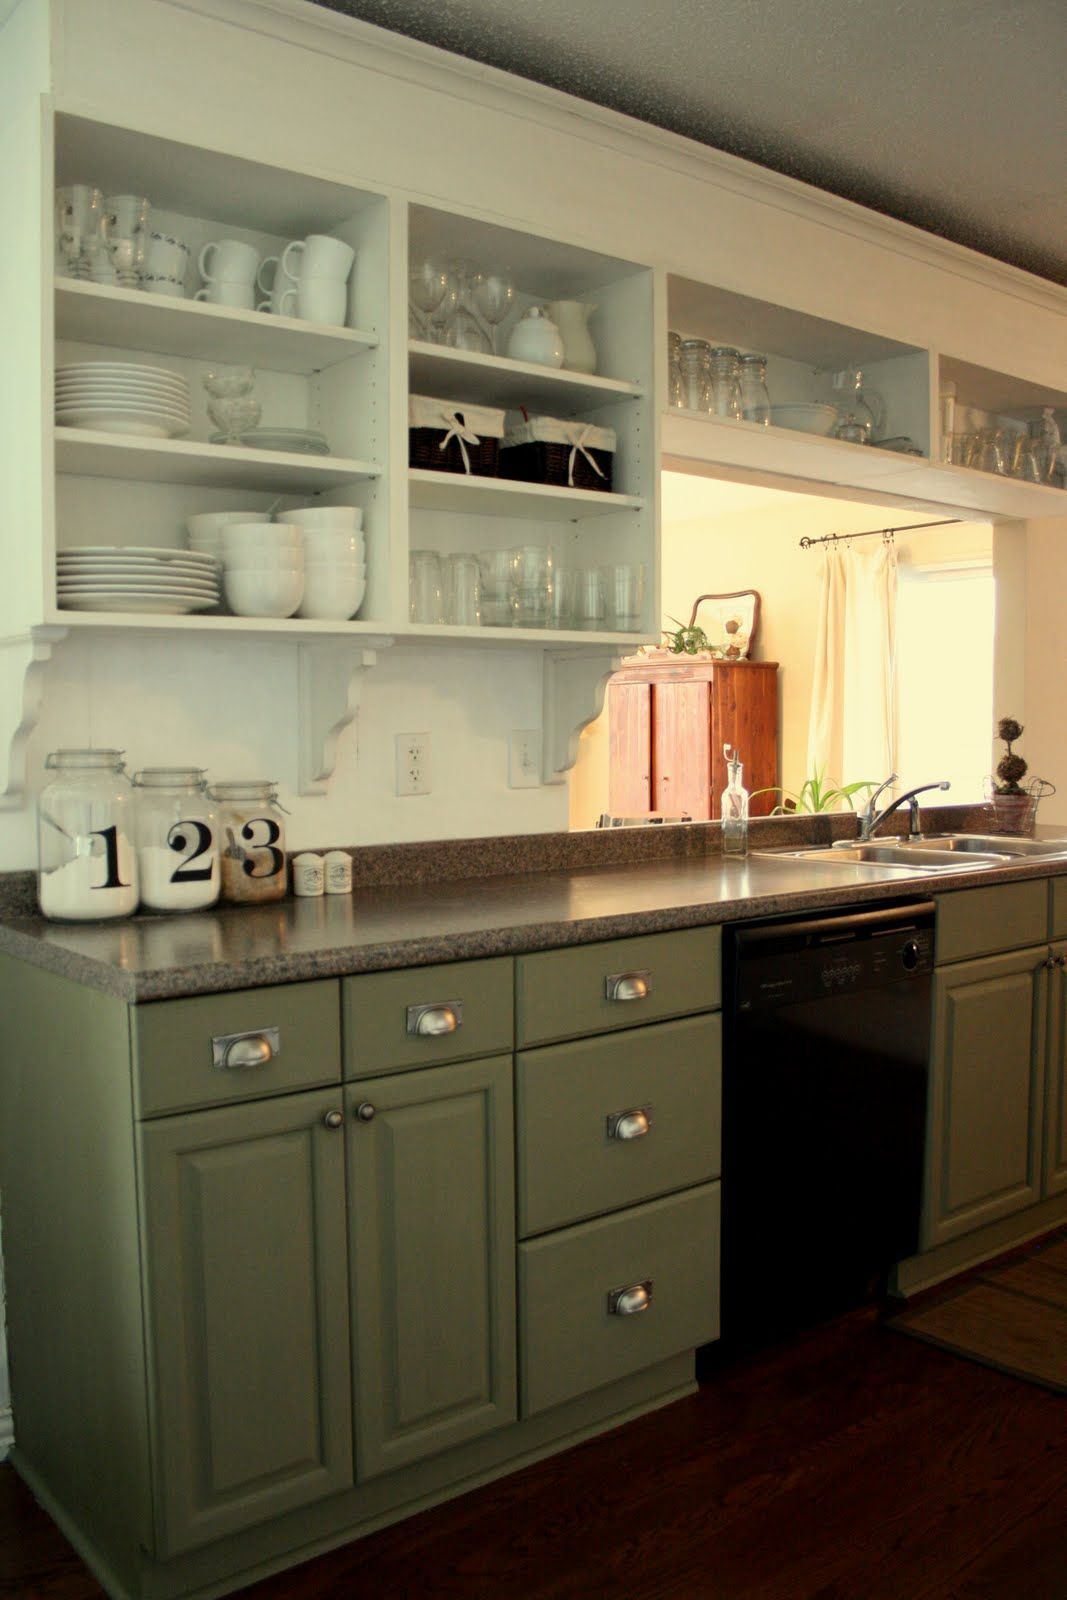 Green Lowers White Uppers With White Subway Tile And A